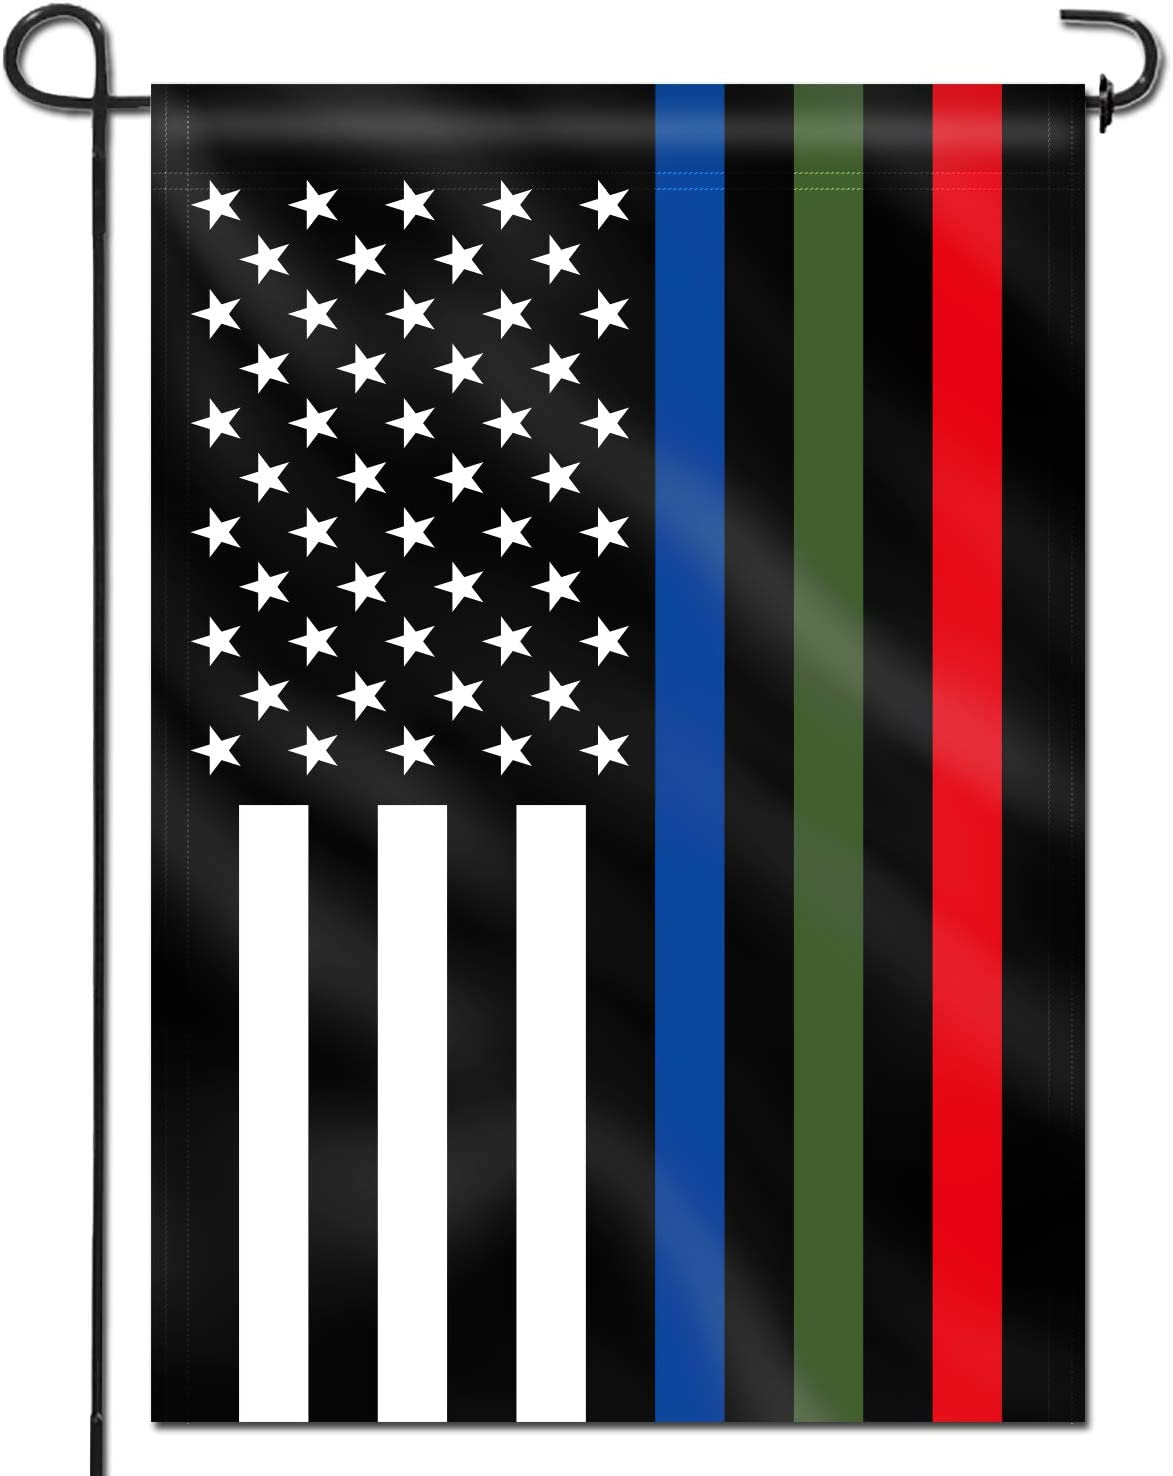 Anley Double Sided Premium Garden Flag, Thin Blue Green and Red Line USA Decorative Garden Flags - Weather Resistant & Double Stitched - 18 x 12.5 Inch